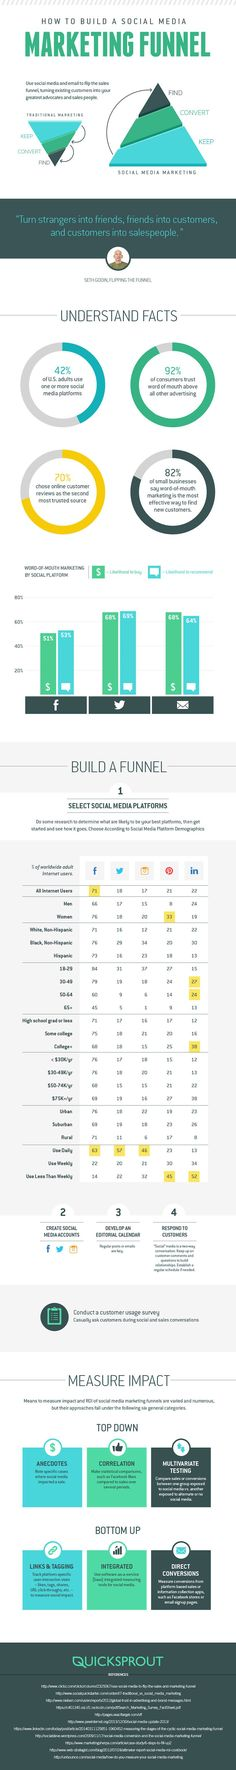 How You Can Build a Social Media Marketing Funnel [INFOGRAPHIC]